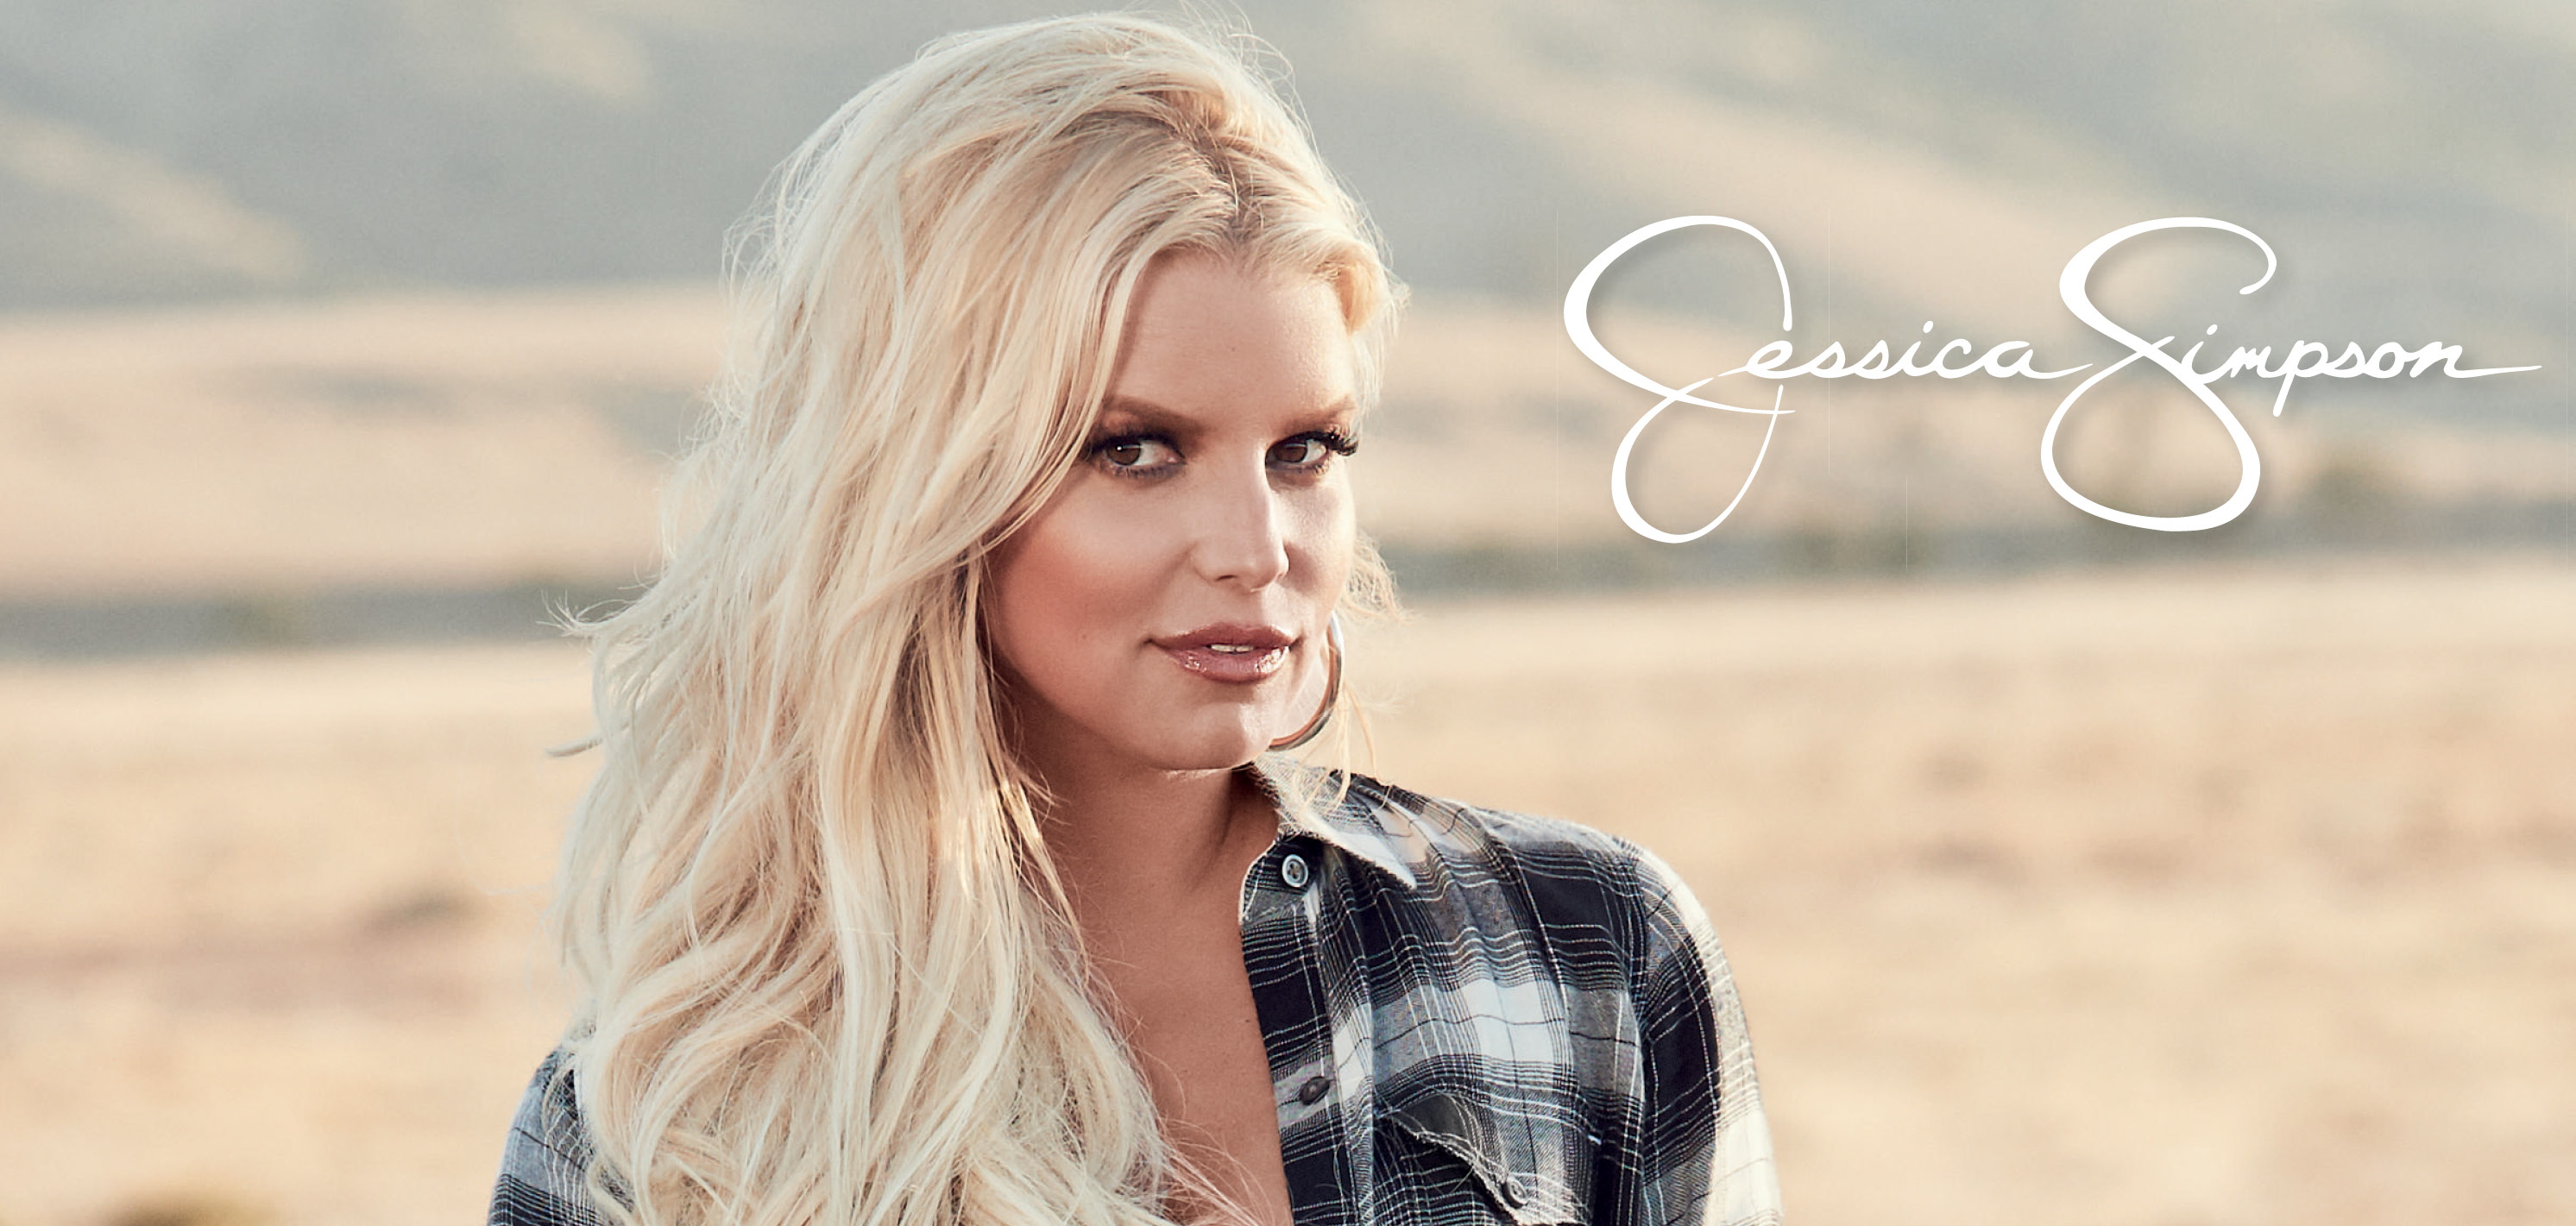 SEQUENTIAL BRANDS GROUP AND JESSICA SIMPSON ANNOUNCE NEW PARTNERSHIP WITH CENTRIC BRANDS FOR HANDBAG AND JEWELRY COLLECTIONS